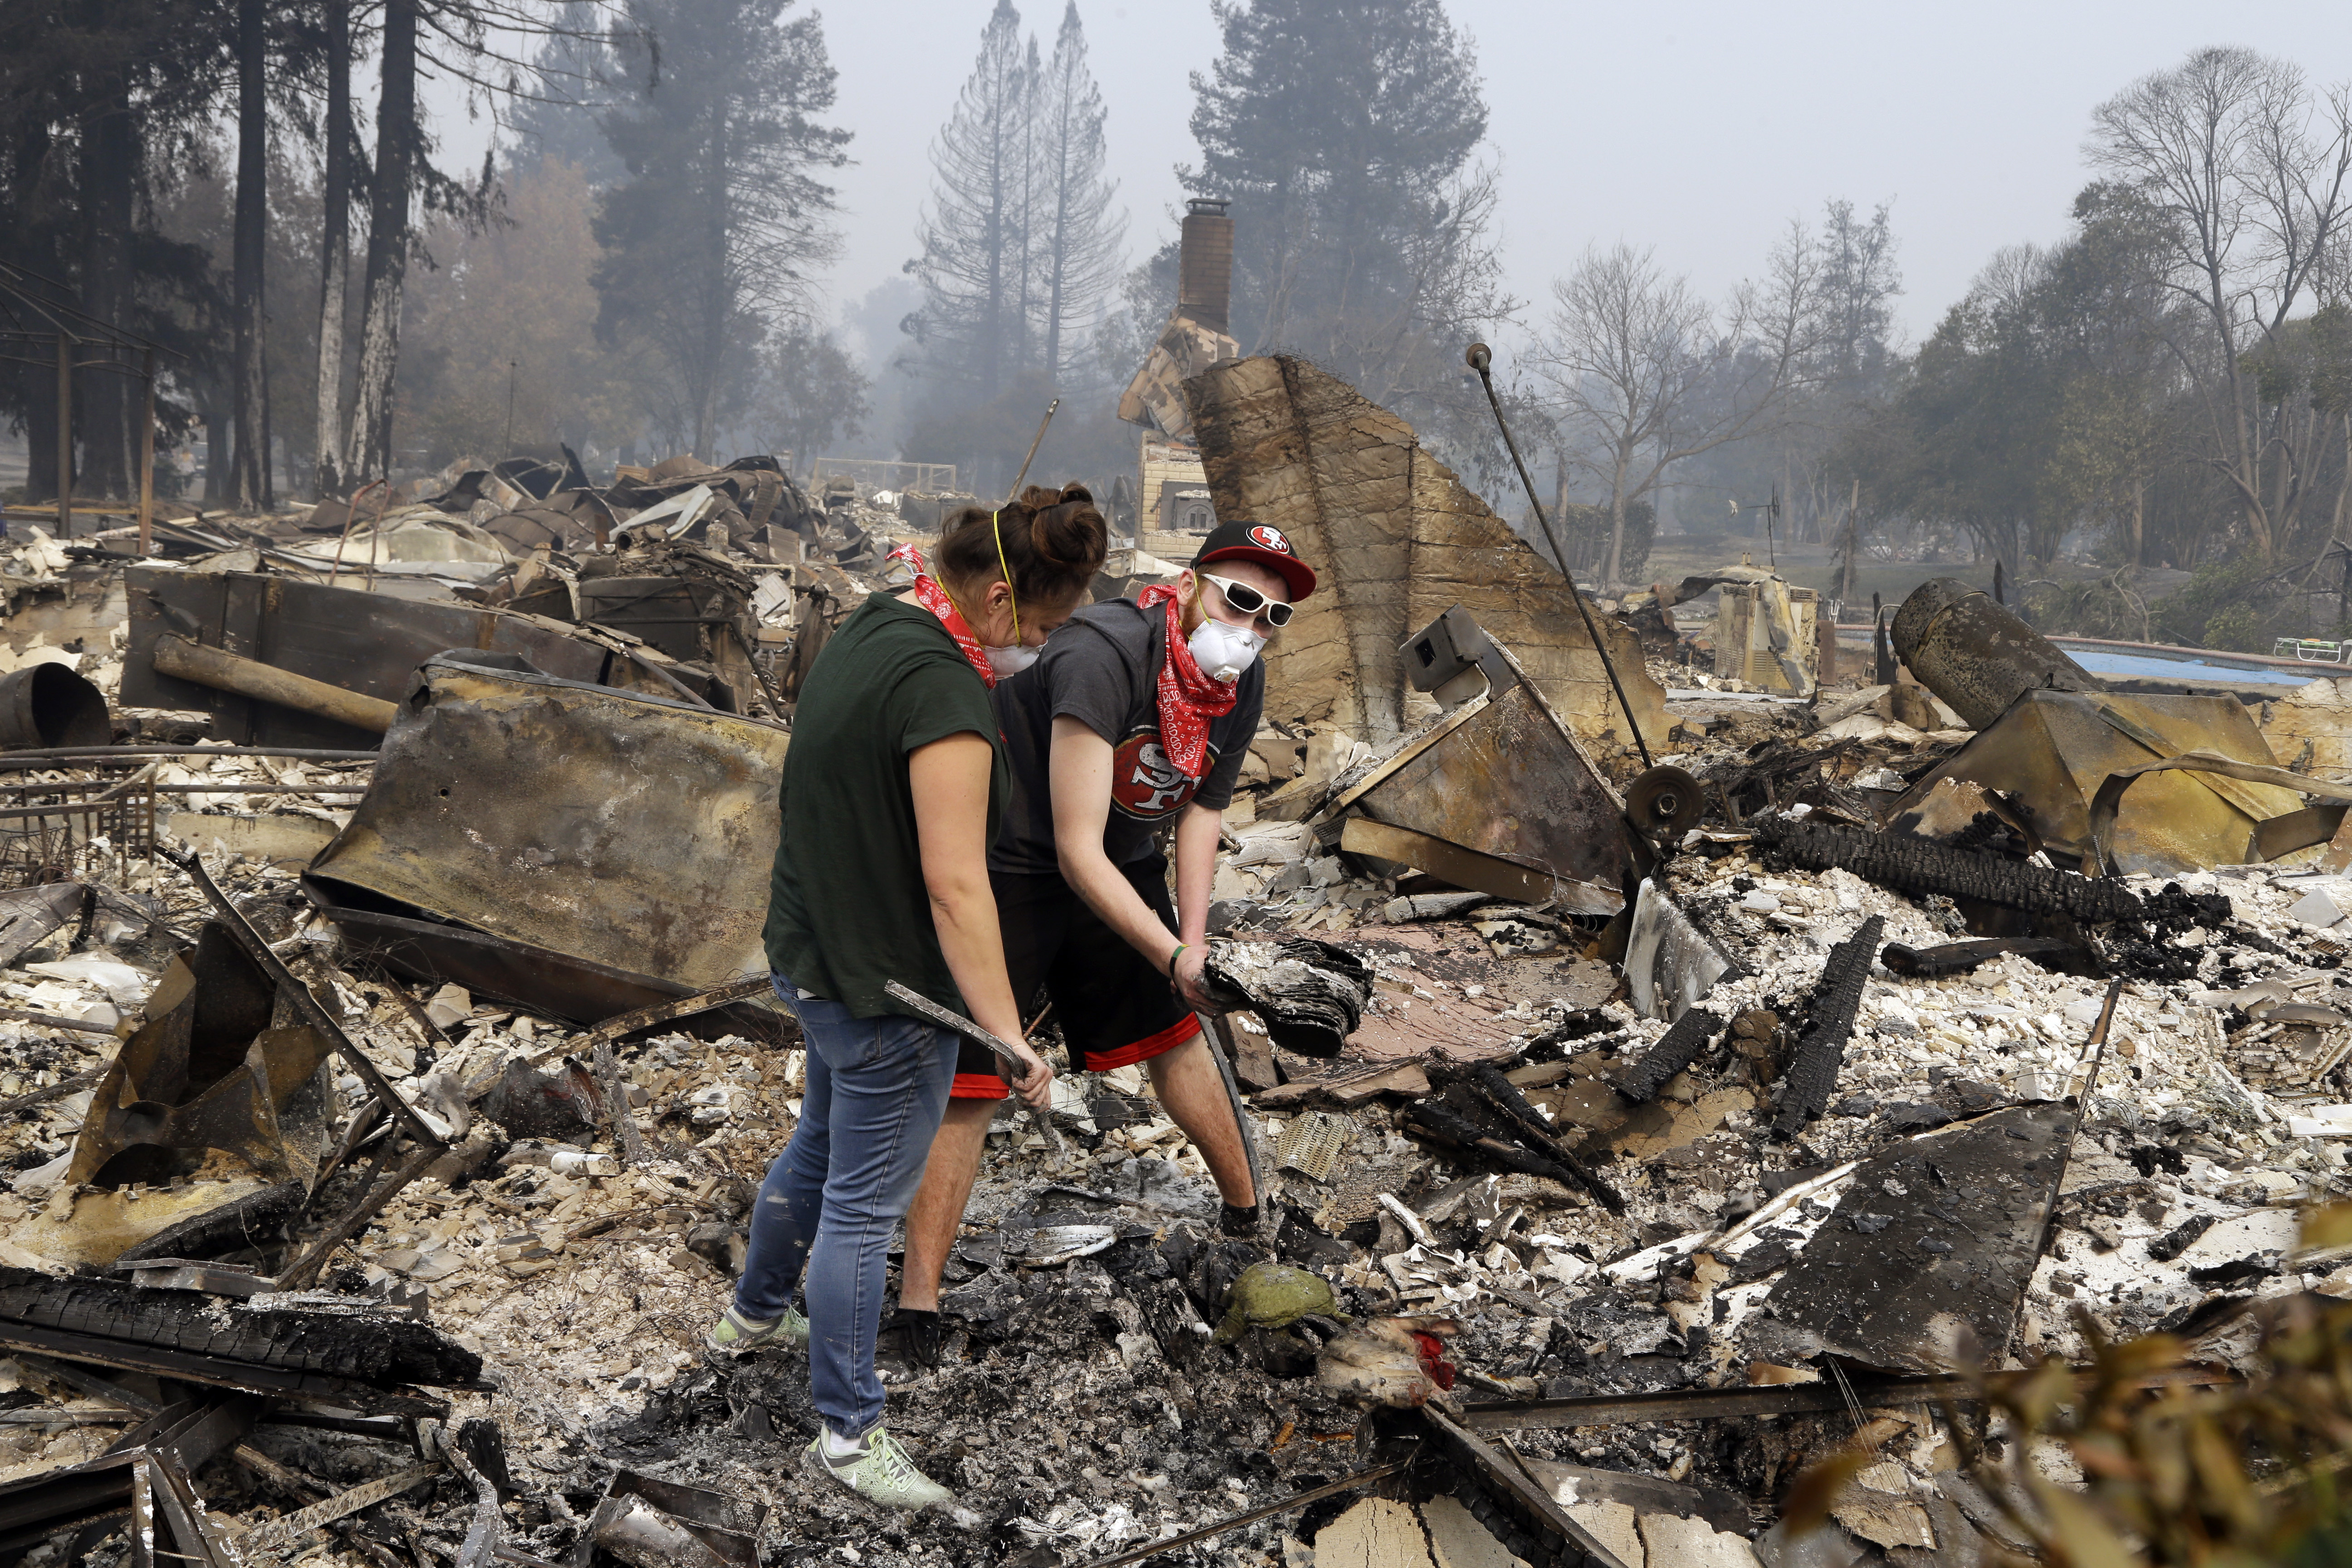 Robyn & Daniel Pellegrini search for belongings in the ashes of their home that was destroyed by fire in the Coffey Park area of Santa Rosa, Calif., on Tuesday, Oct. 10, 2017. An onslaught of wildfires across a wide swath of Northern California broke out almost simultaneously then grew exponentially, swallowing up properties from wineries to trailer parks and tearing through both tiny rural towns and urban subdivisions. (AP Photo/Ben Margot)